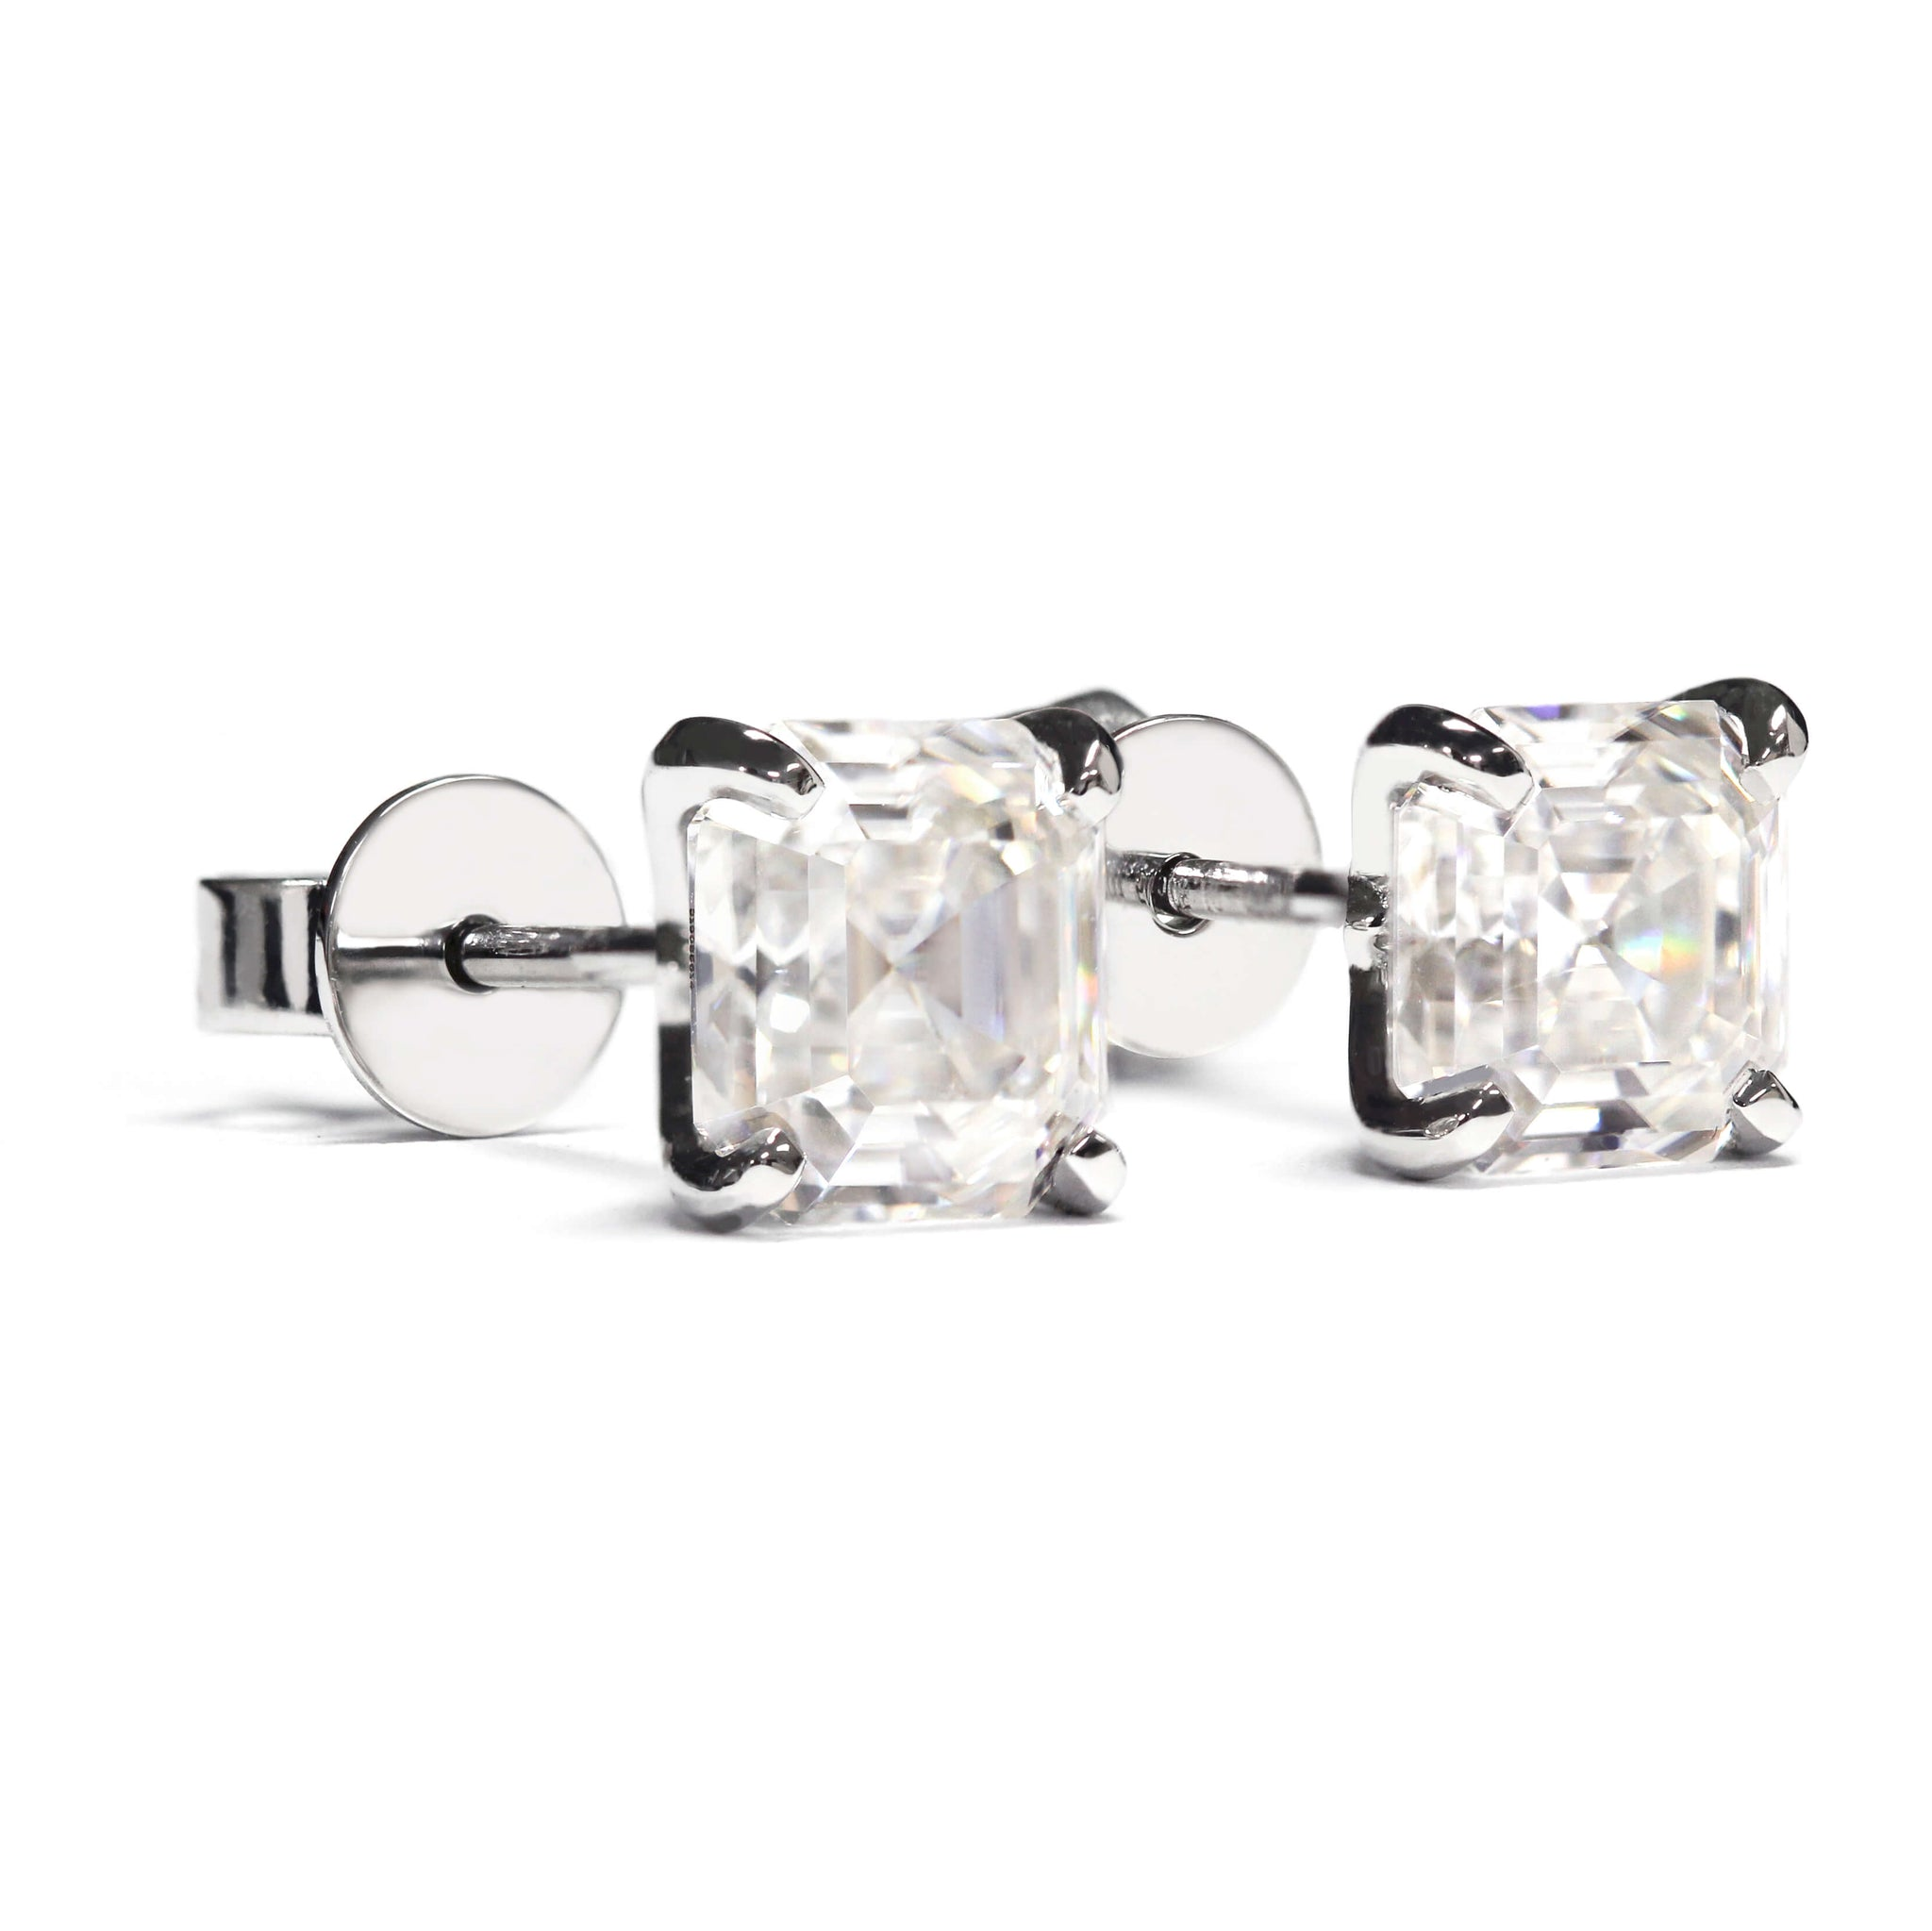 Asscher Moissanite 18K White Gold Stud Earrings